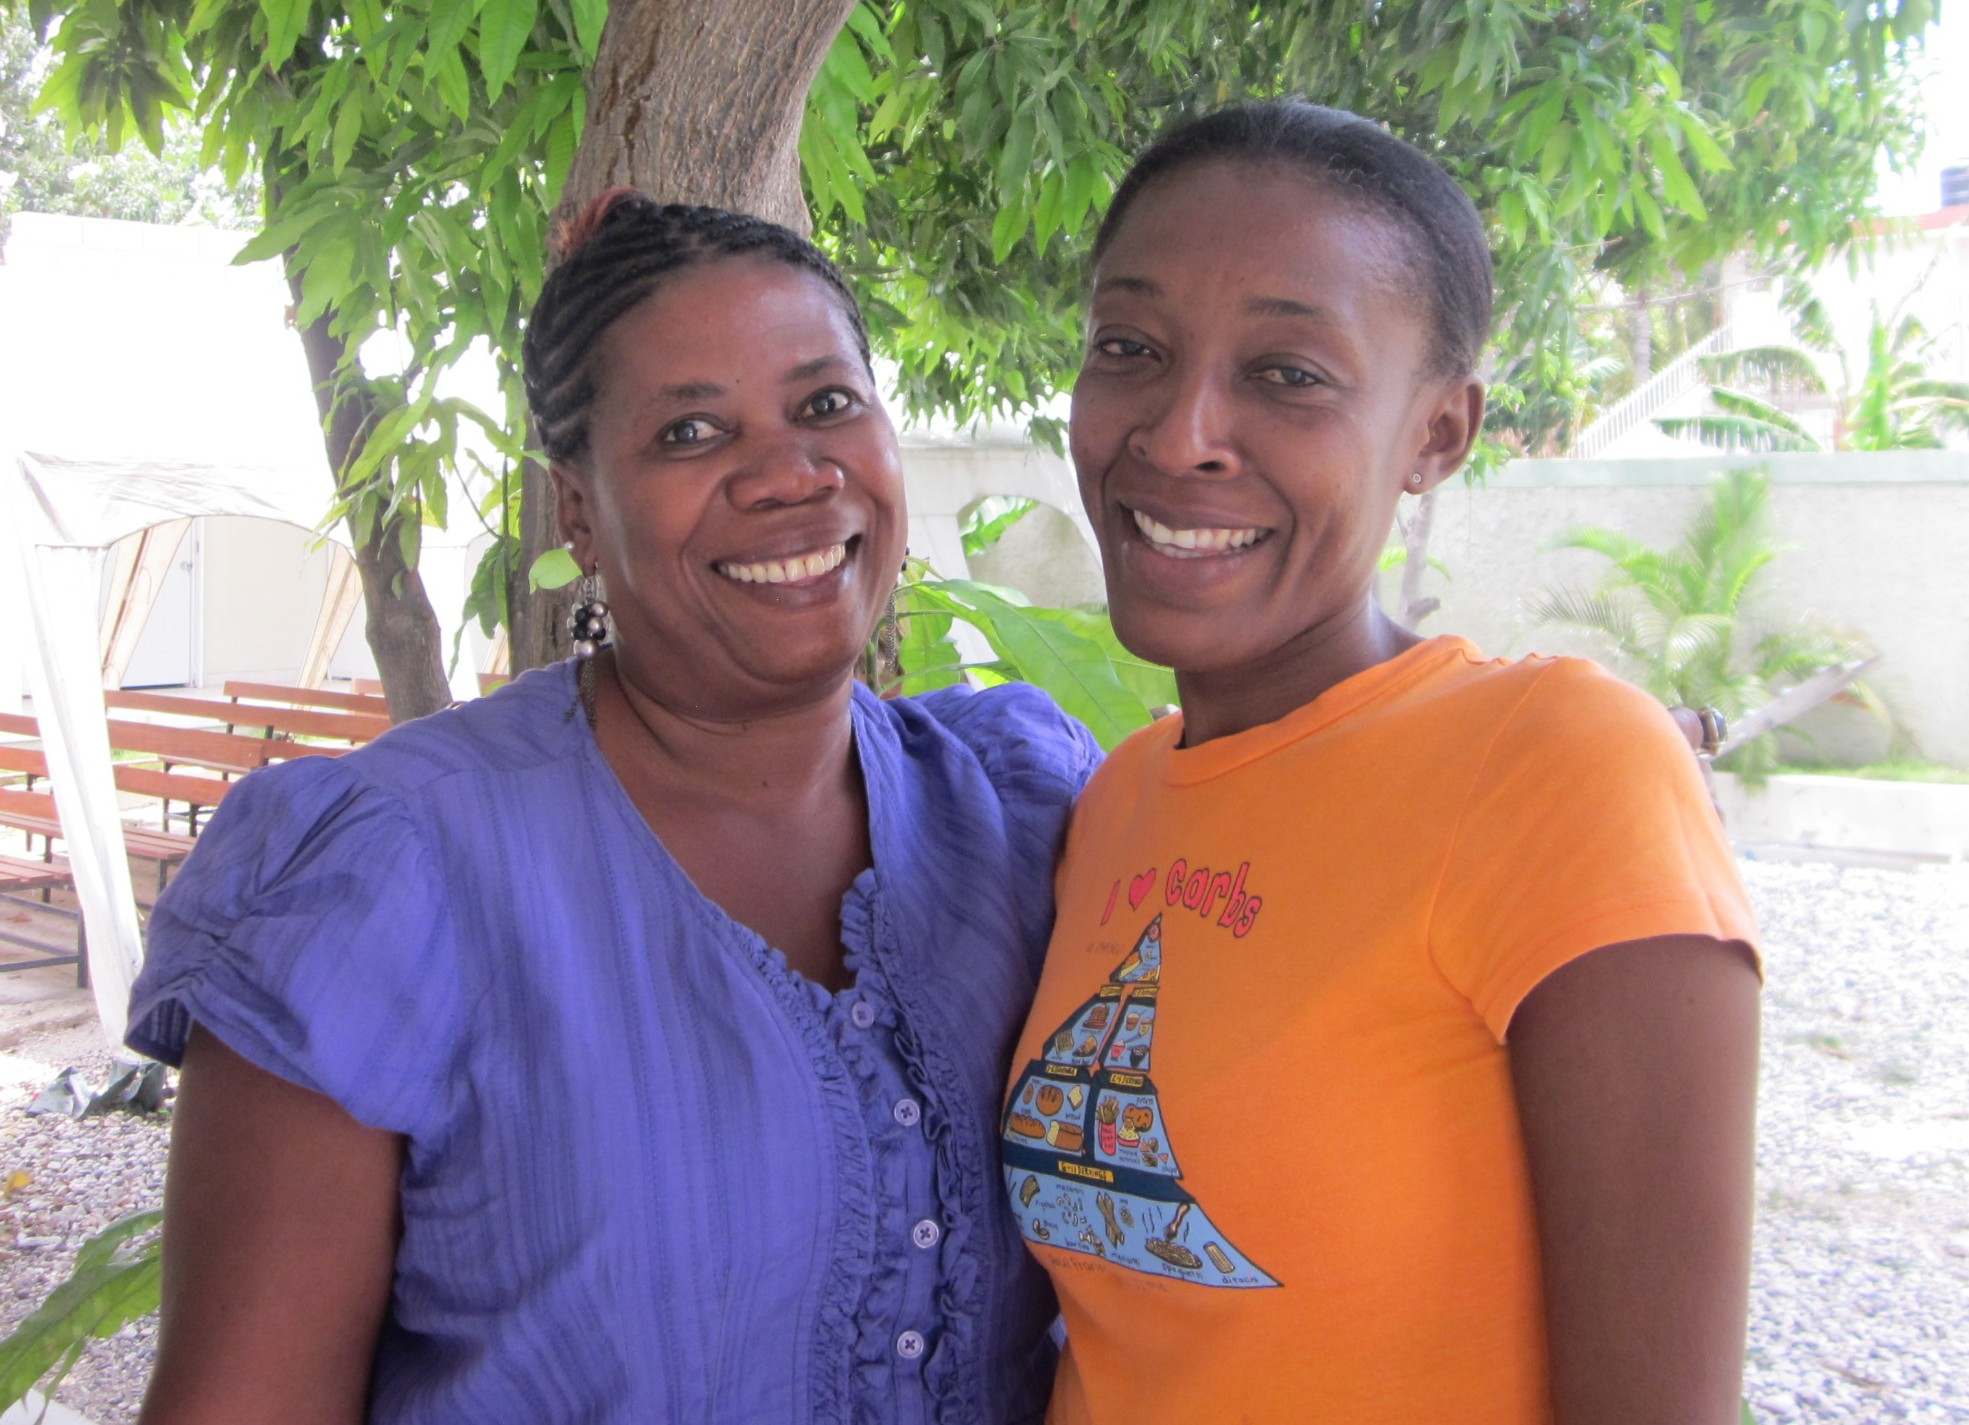 Yolette (left) and Adeline (right) help women access cervical cancer screenings in their community in Haiti.